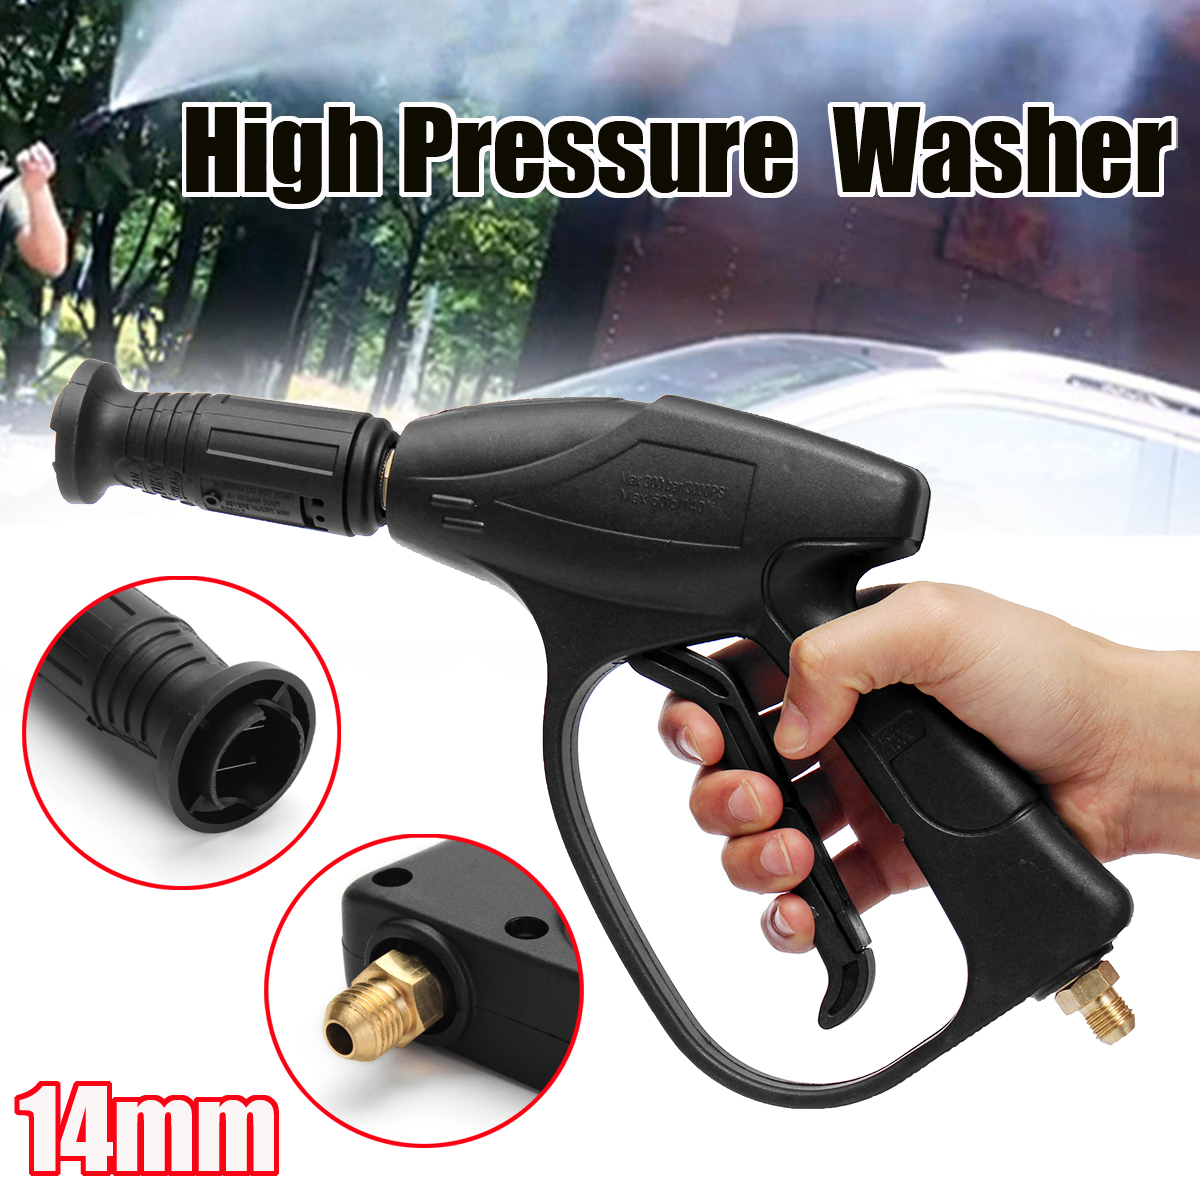 New 3000 PSI High Pressure Power Car Washer-Gun Water Jet Cleaner 14mm Quick Connect for Car Pressure Power Washers